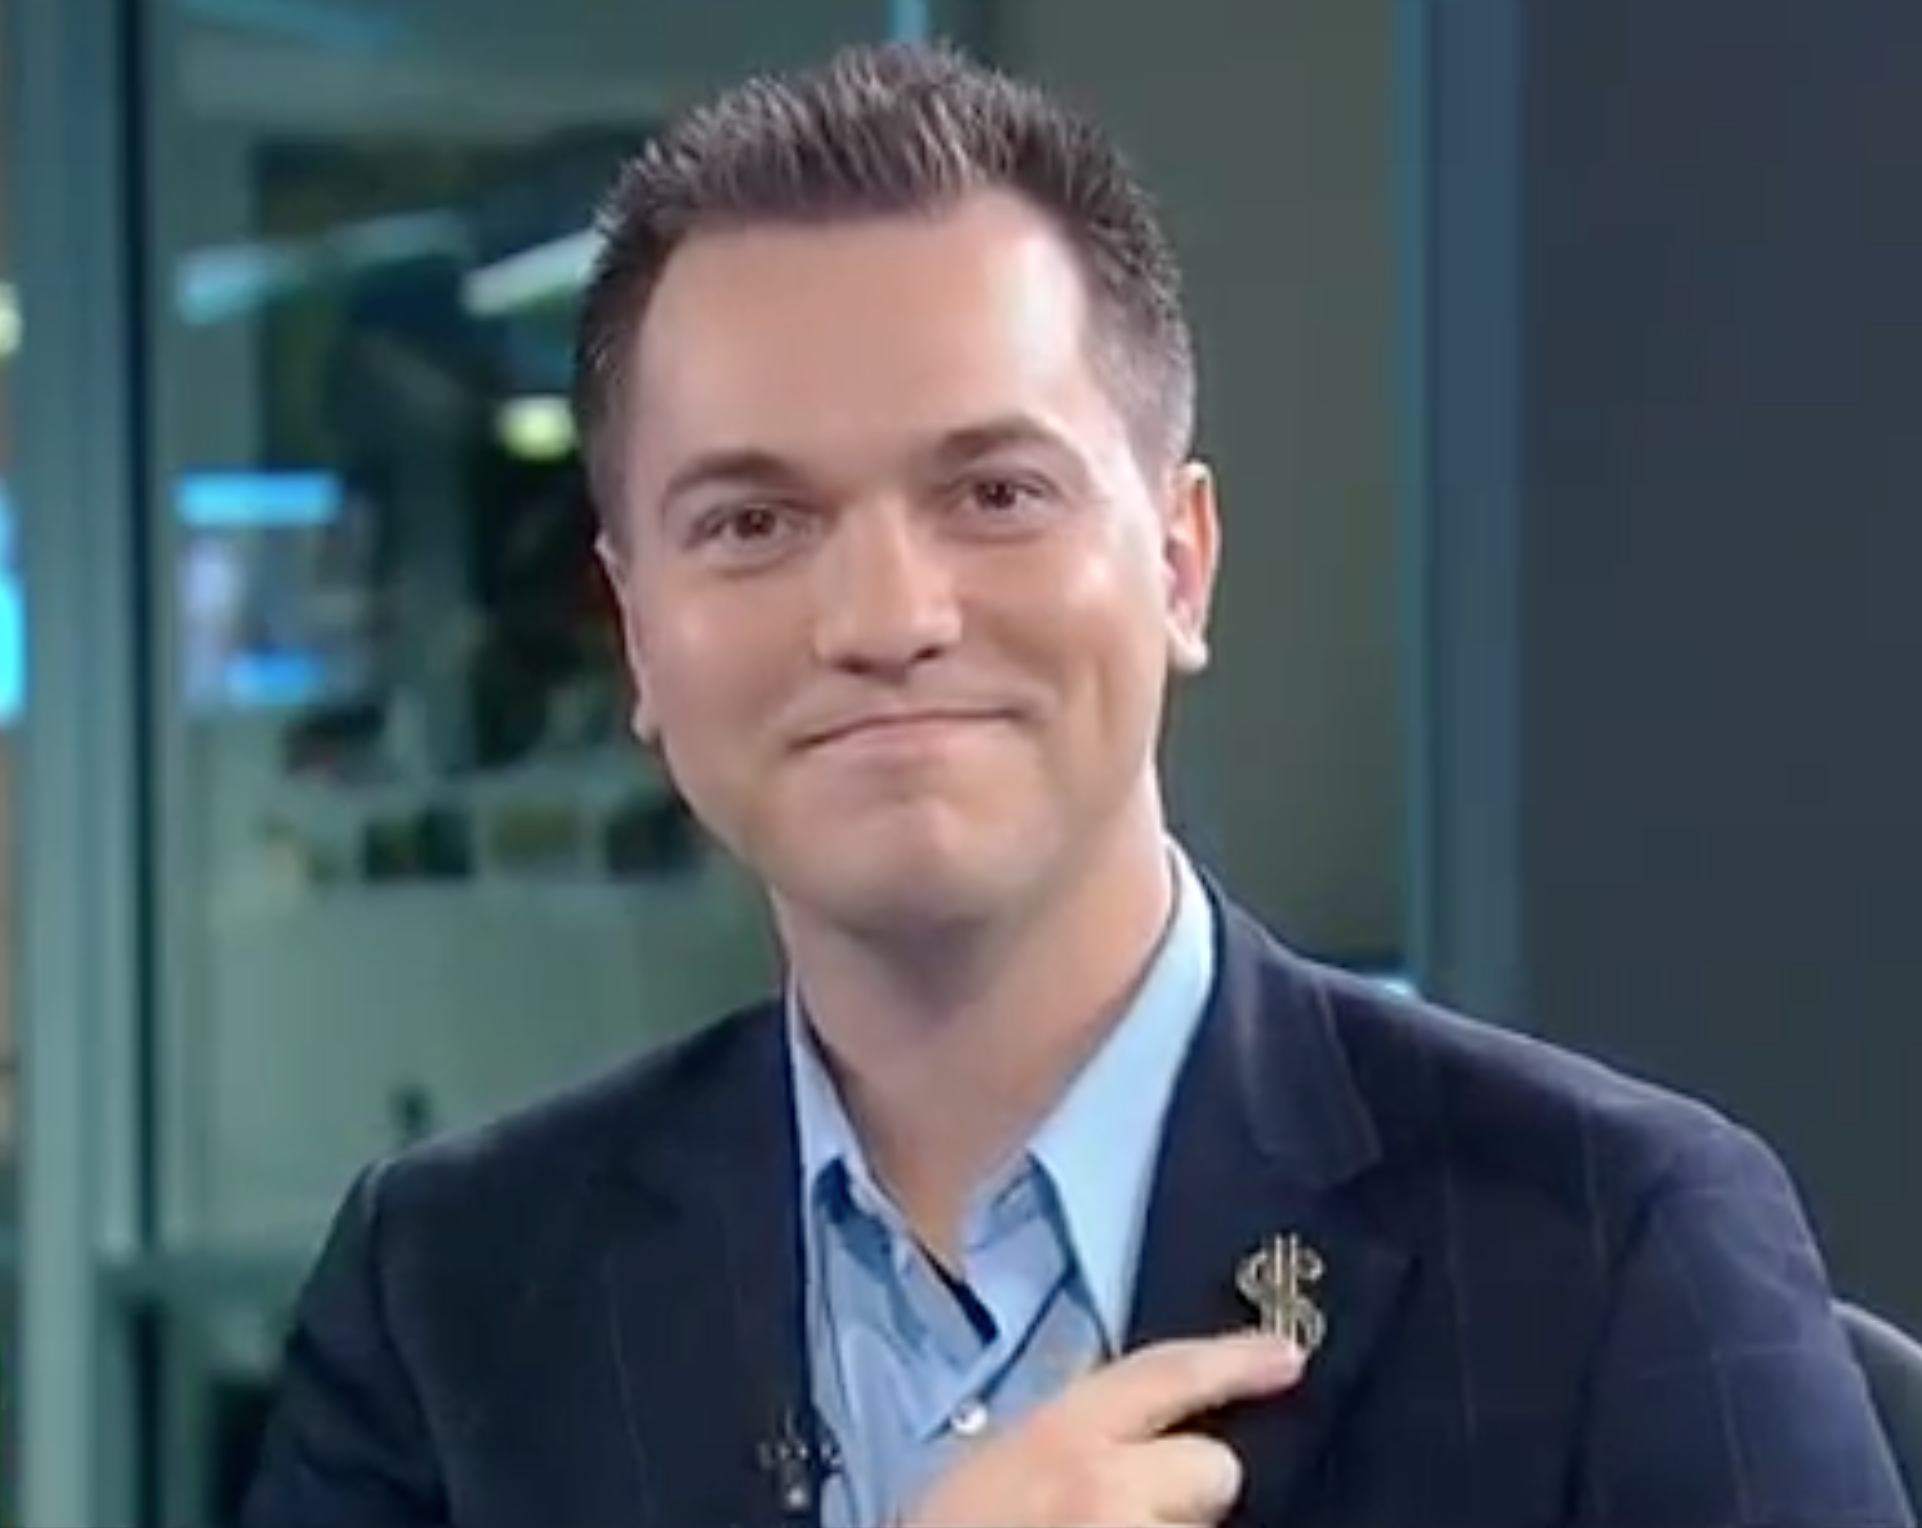 A Libertarian Republic Exclusive Interview: Austin Petersen is Set to Launch Daily Radio Show in Jefferson City